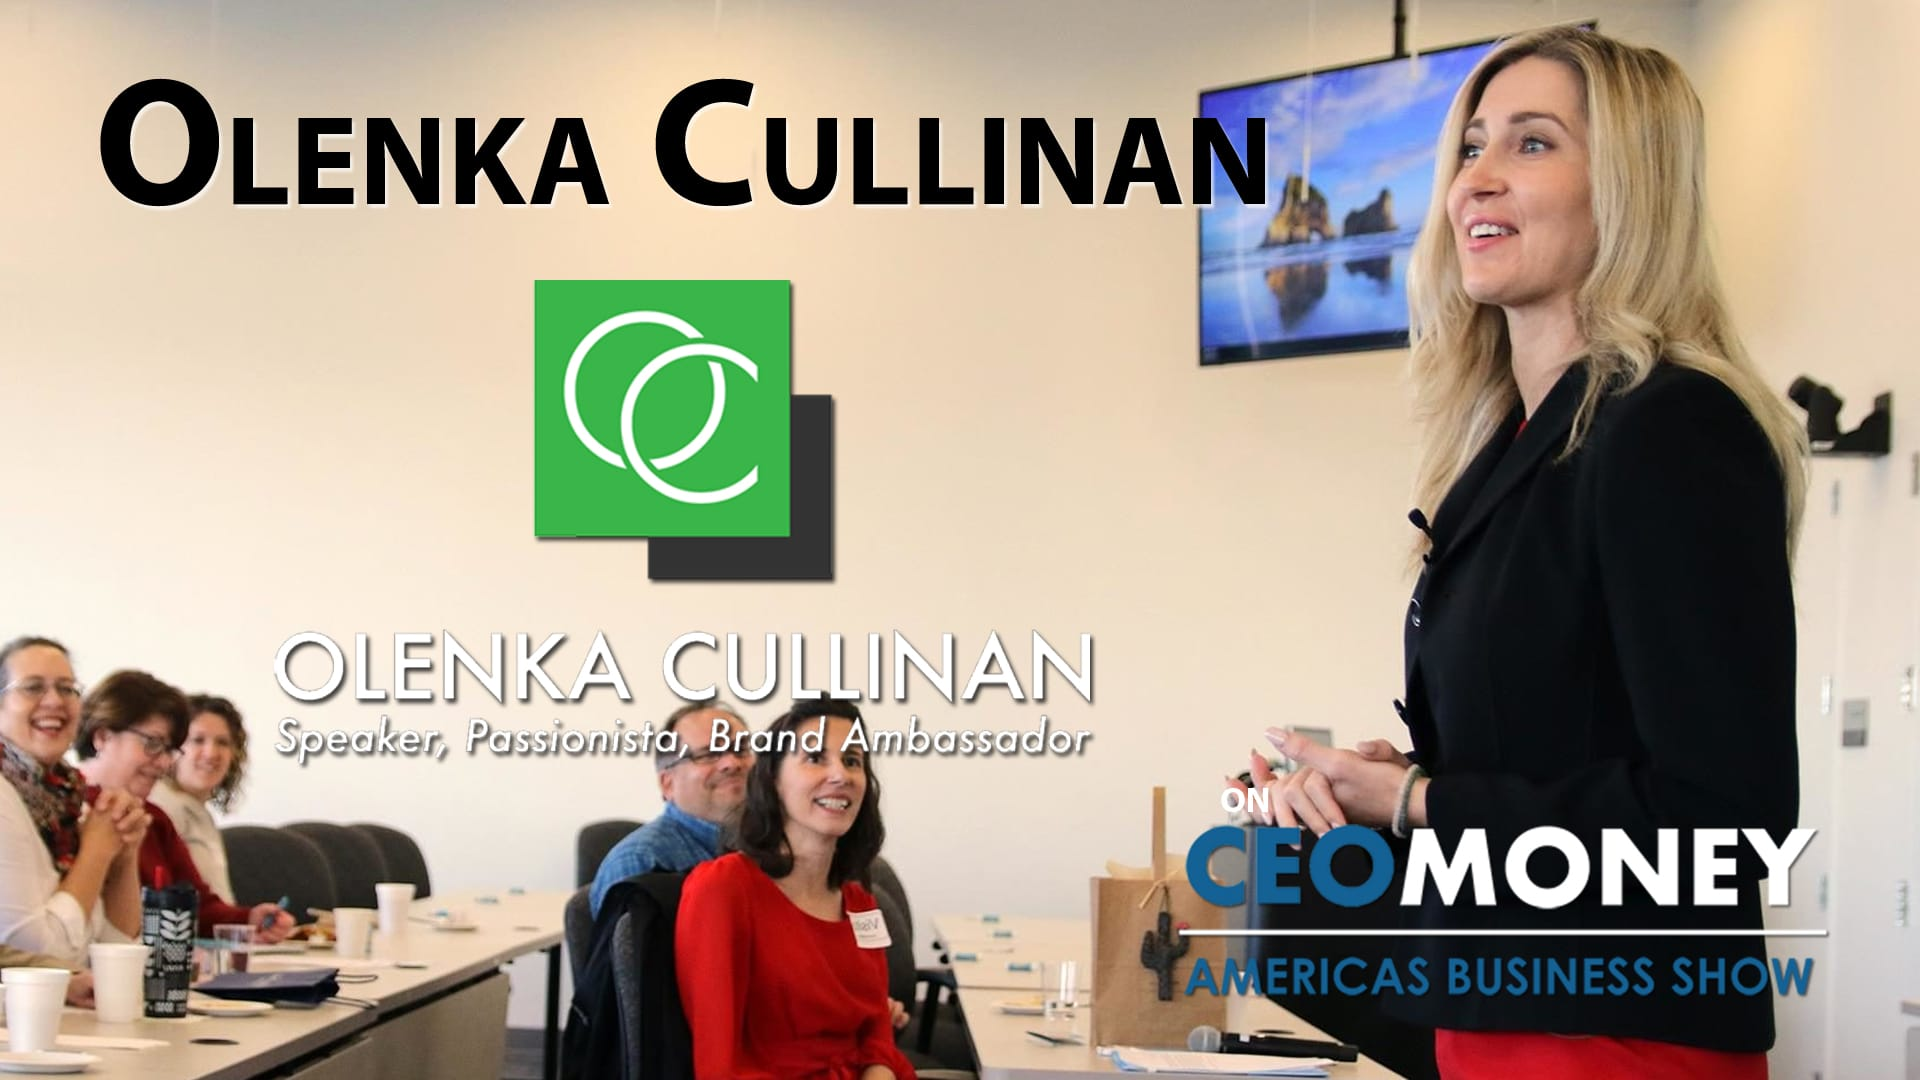 Olenka Cullinan talks why it is essential to include millennial and women leaders to empower brands